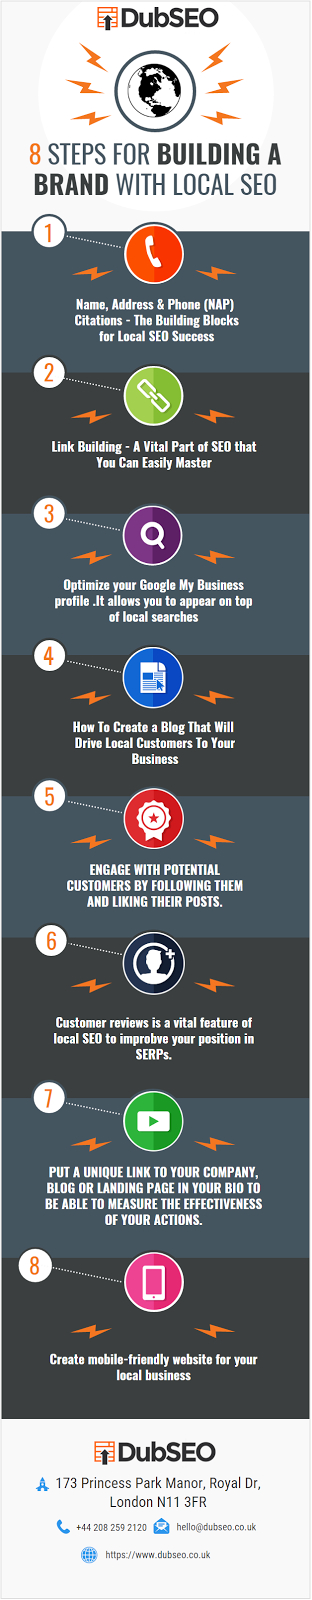 How to BUILDING A BRAND With Local SEO